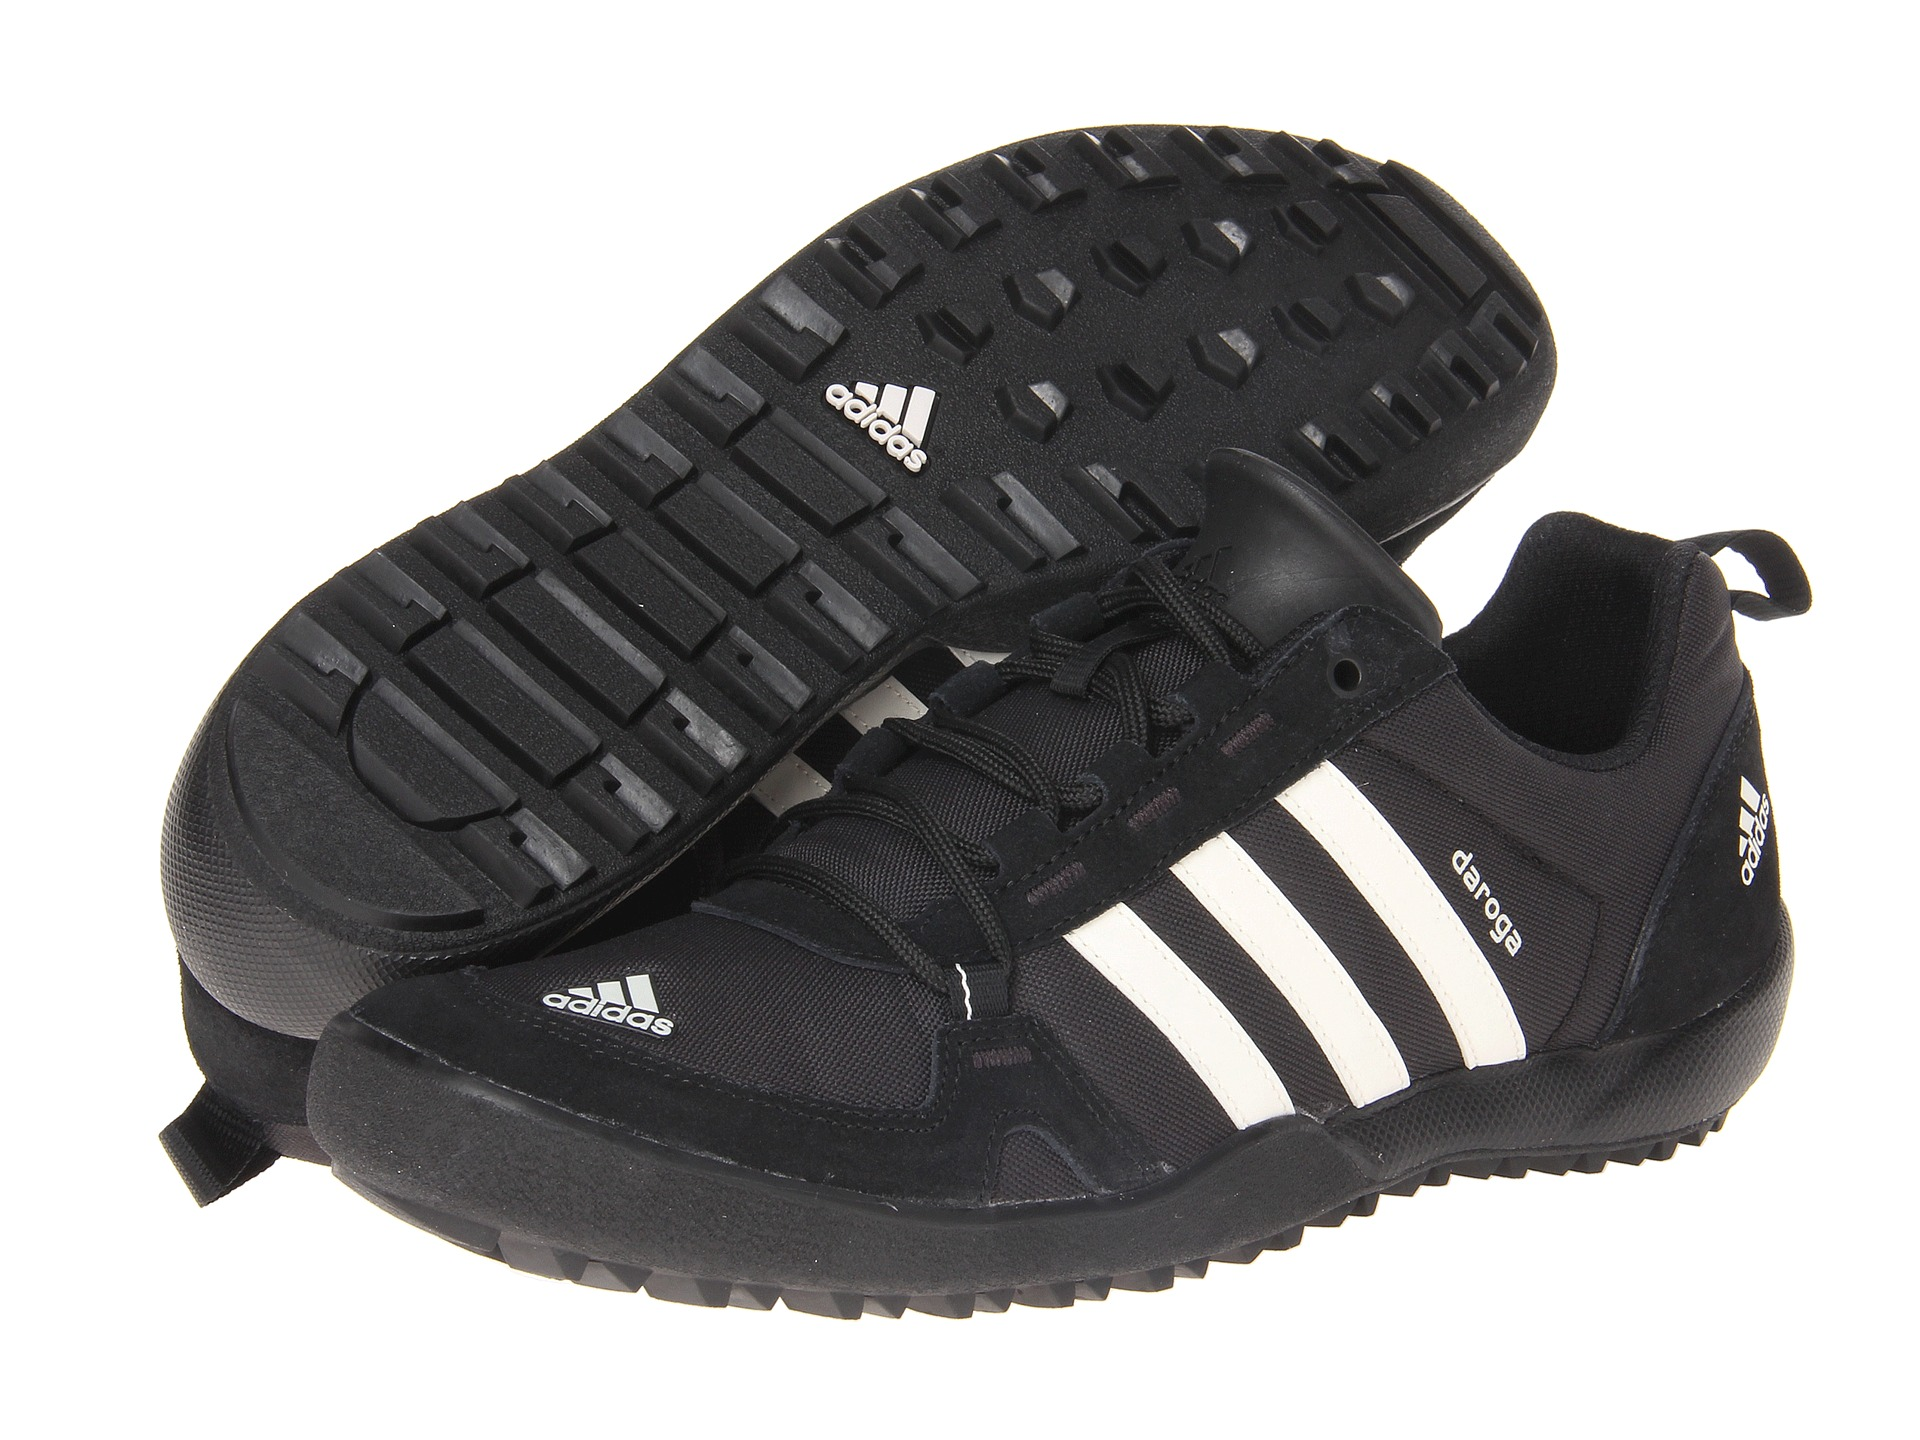 adidas outdoor daroga canvas shoes shipped free at zappos. Black Bedroom Furniture Sets. Home Design Ideas